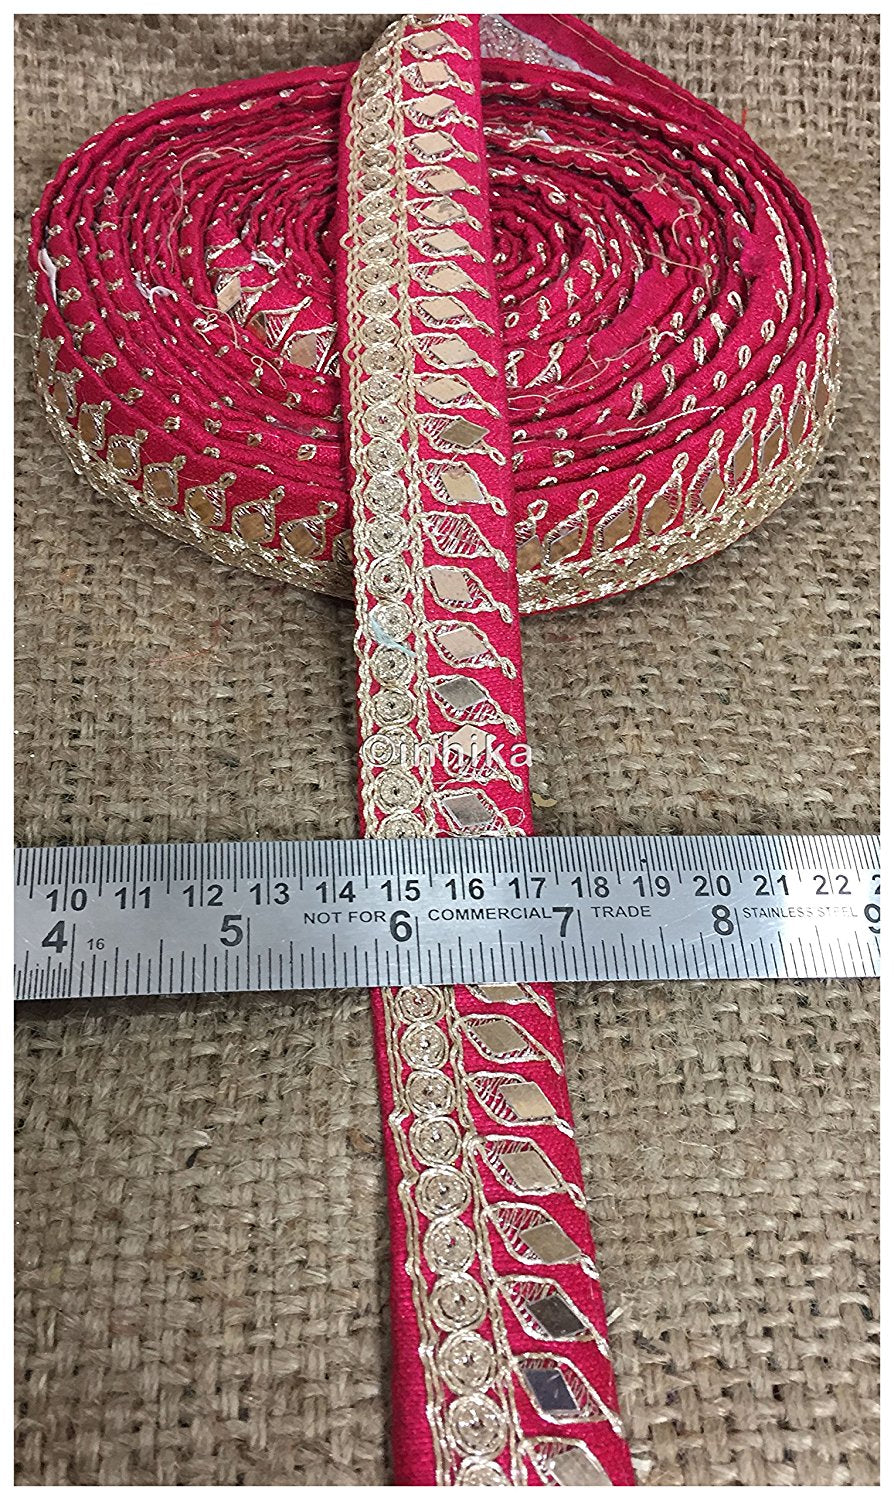 lace trim fabric trims in fashion Pink, Embroidery, Mirror, 2 Inch Wide material Cotton Mix